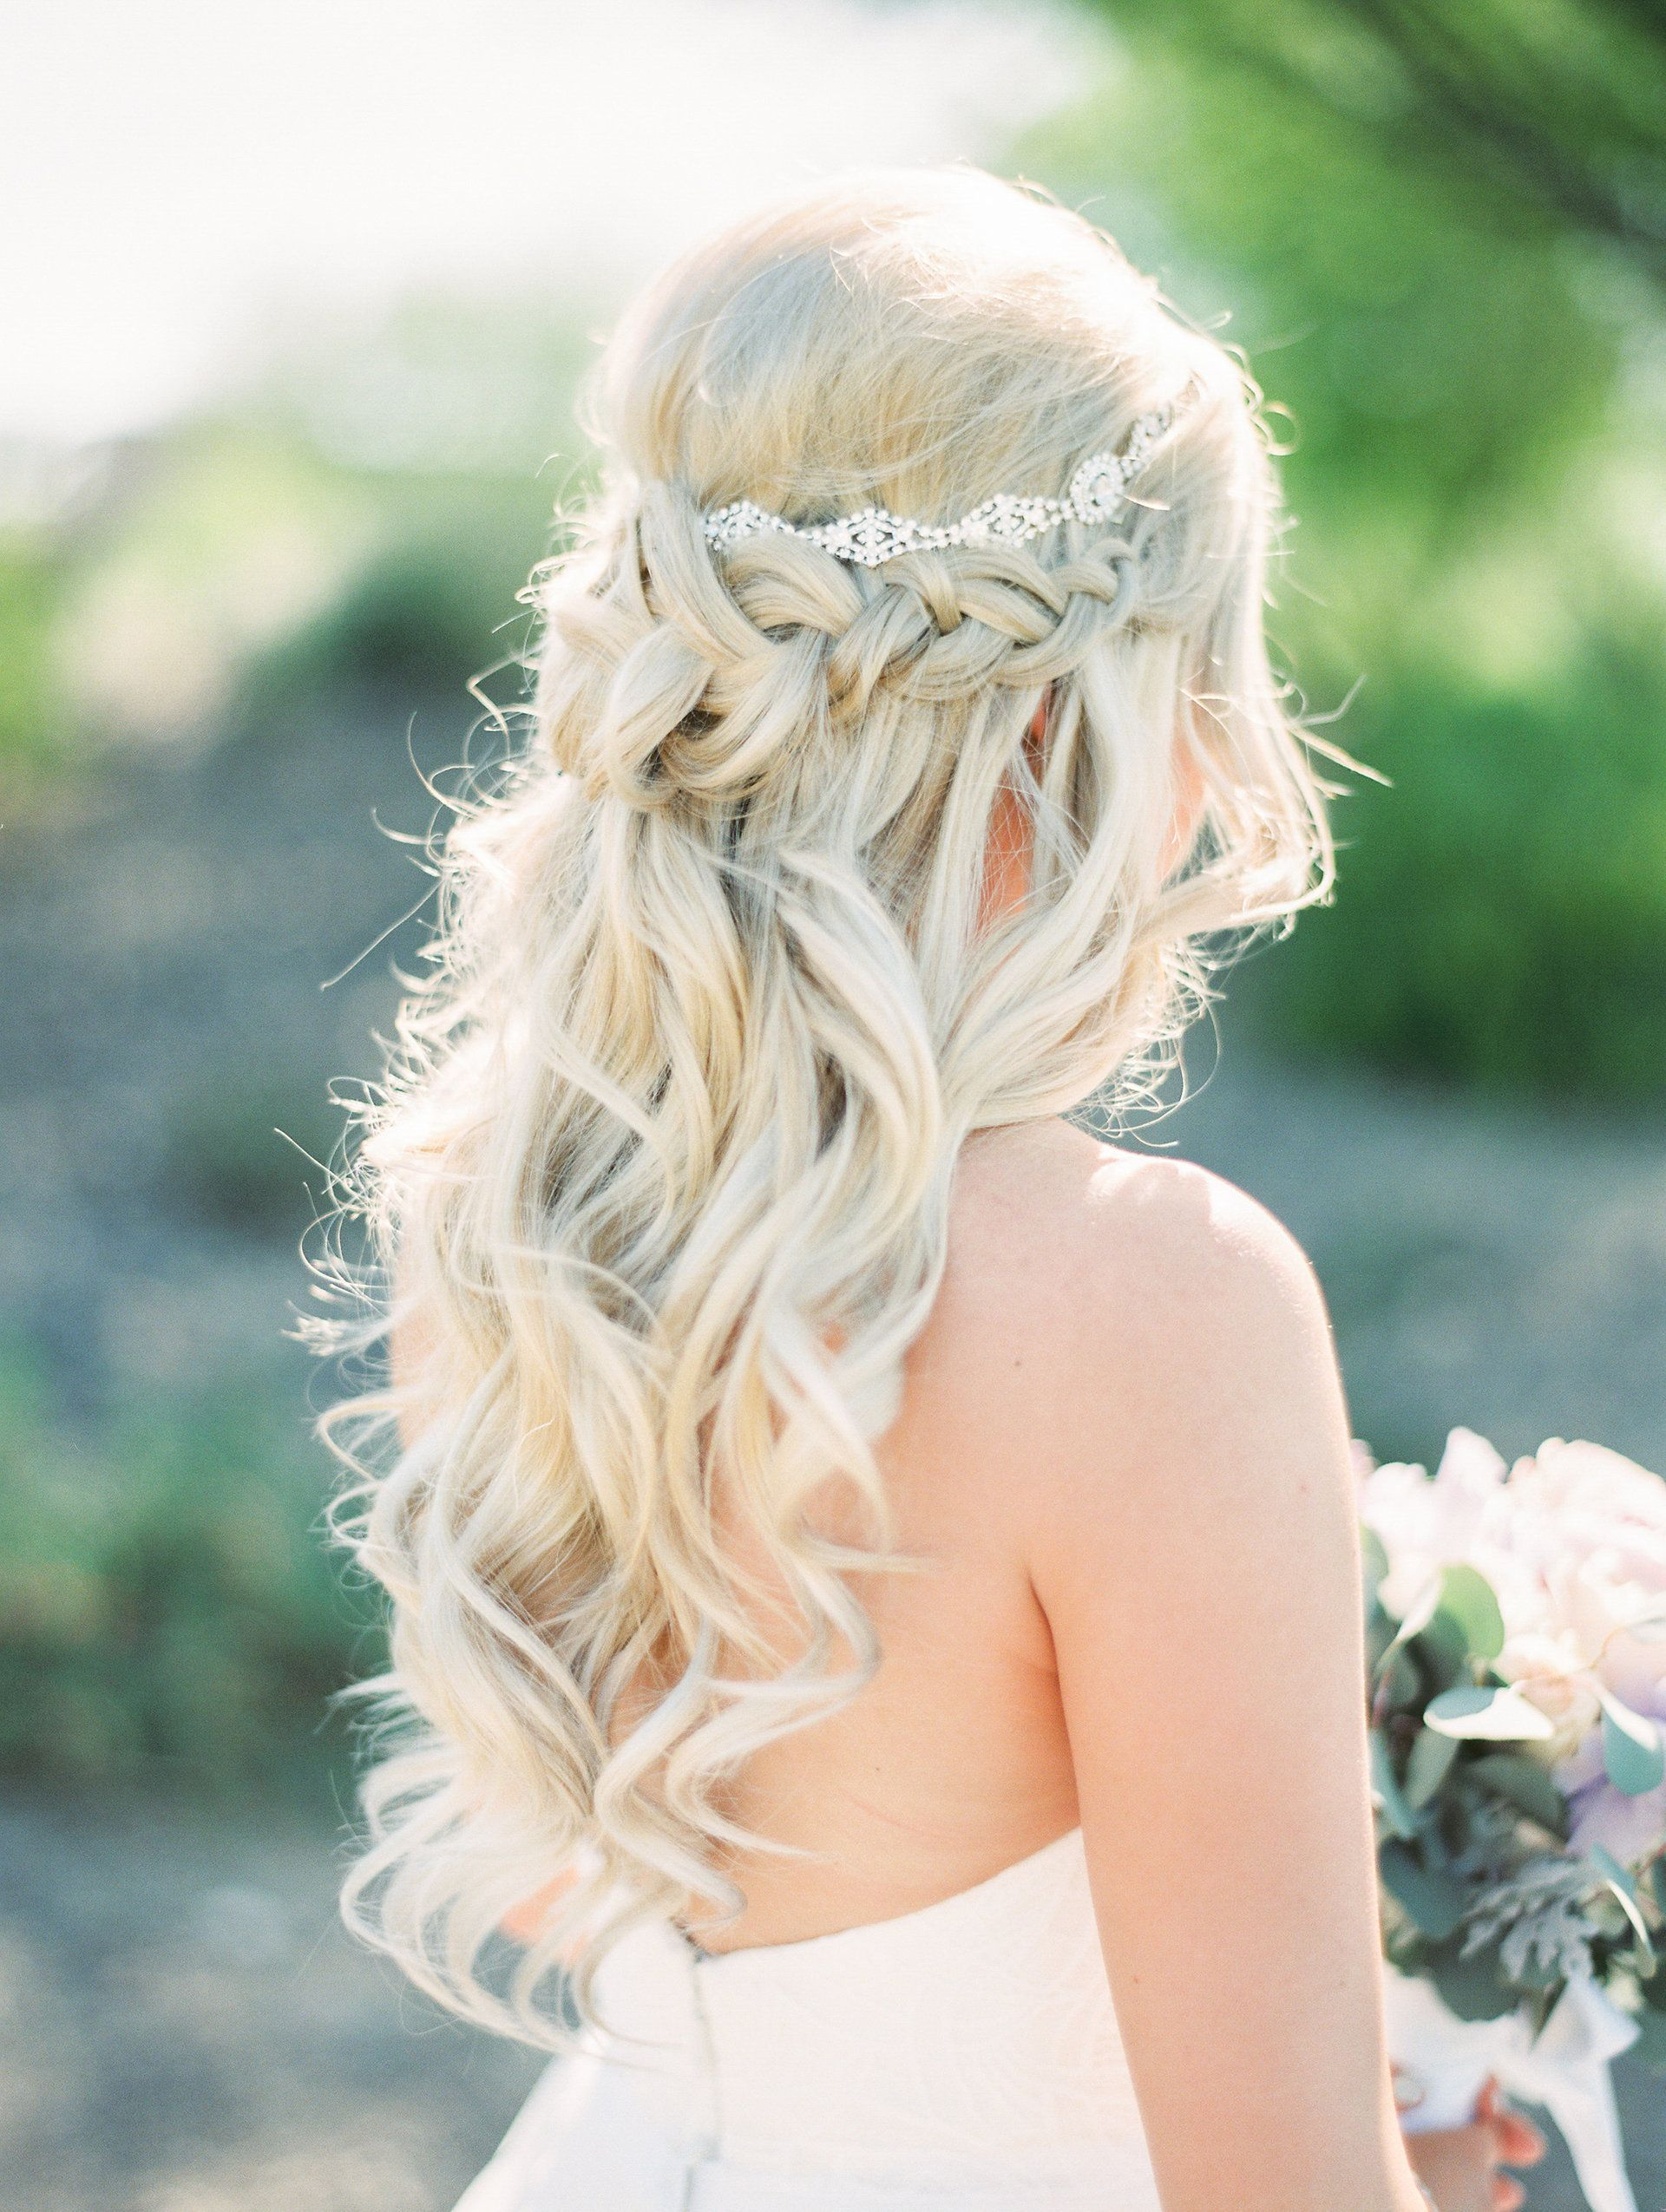 perfect long blonde curls, bridal hair fit for a princess